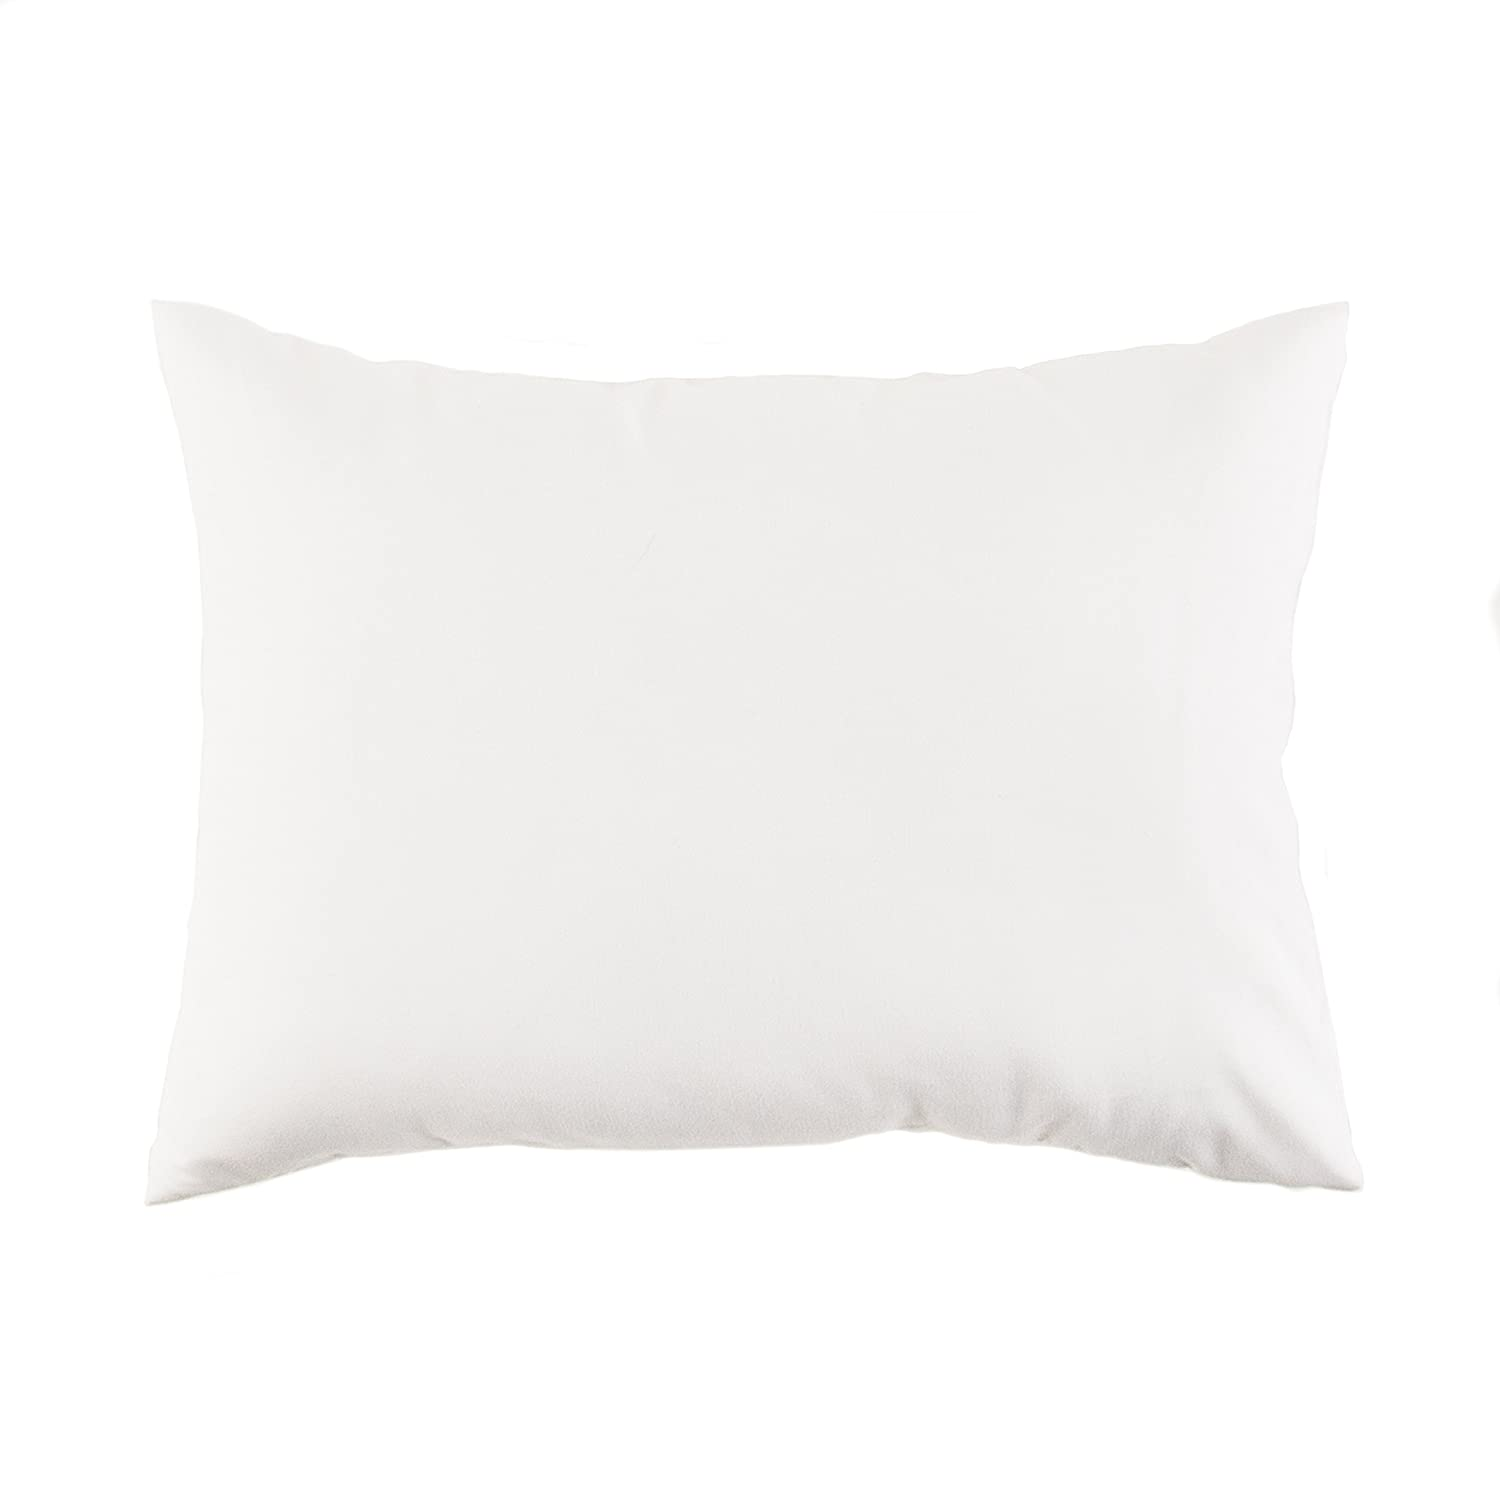 Tadpoles Toddler Pillow with Case, White Sleeping Partners tplwmf009